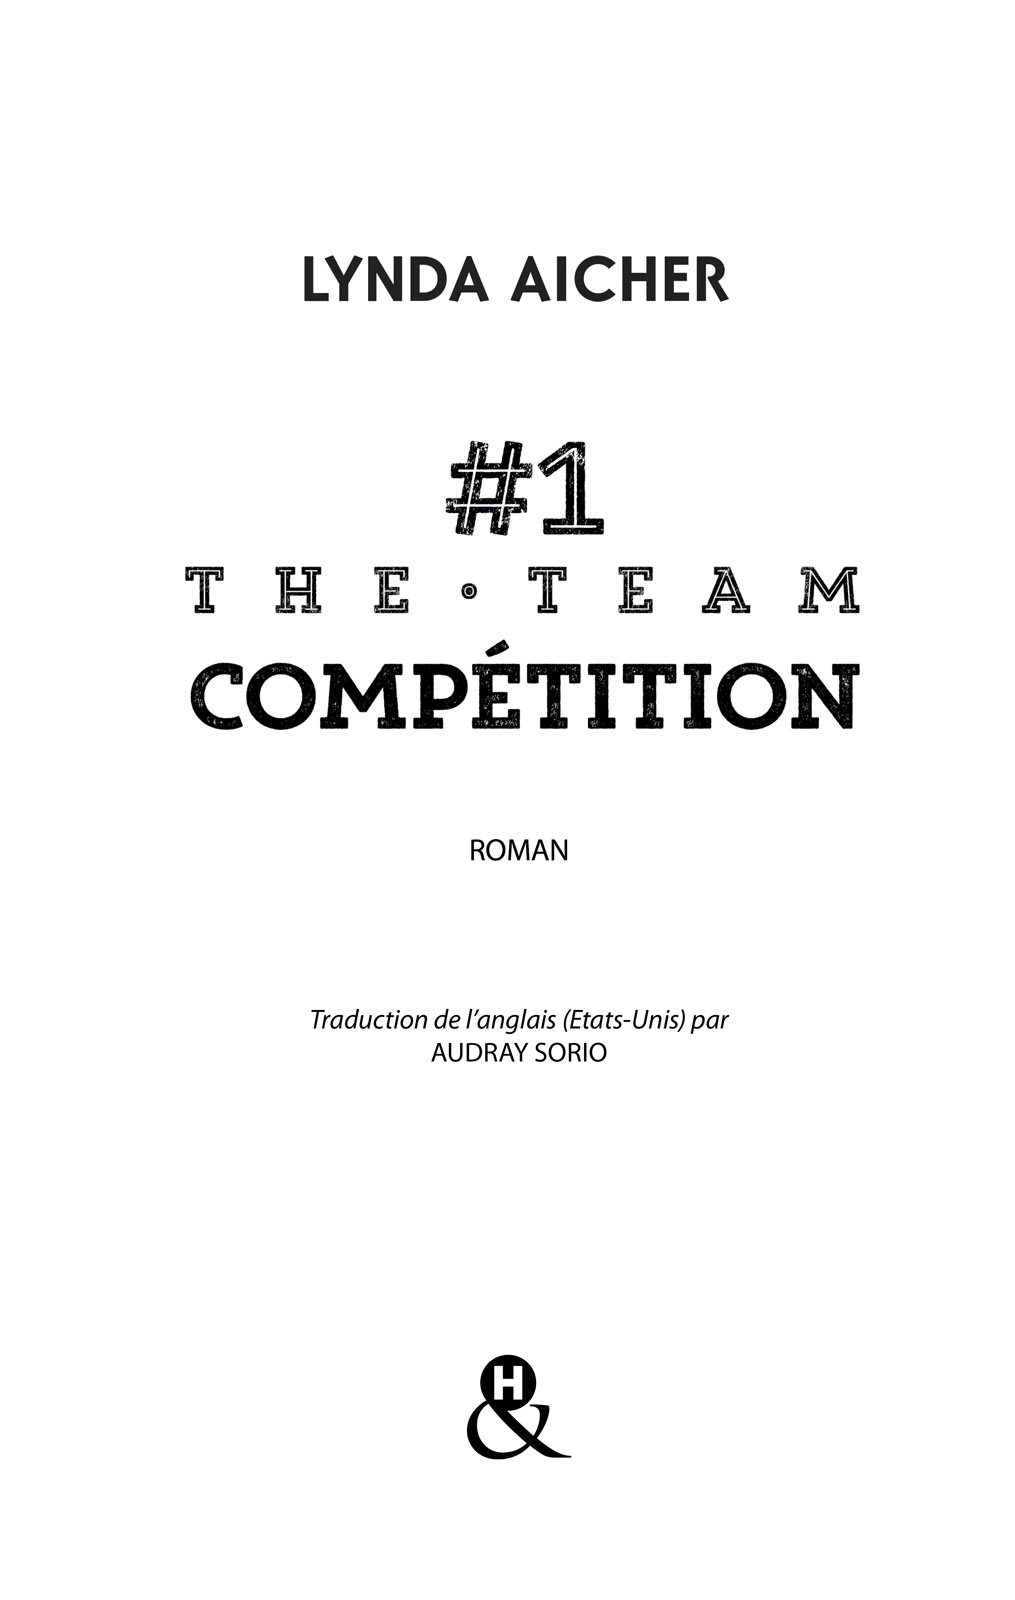 Page de titre : LYNDA AICHER, The Team : Compétition, Harlequin